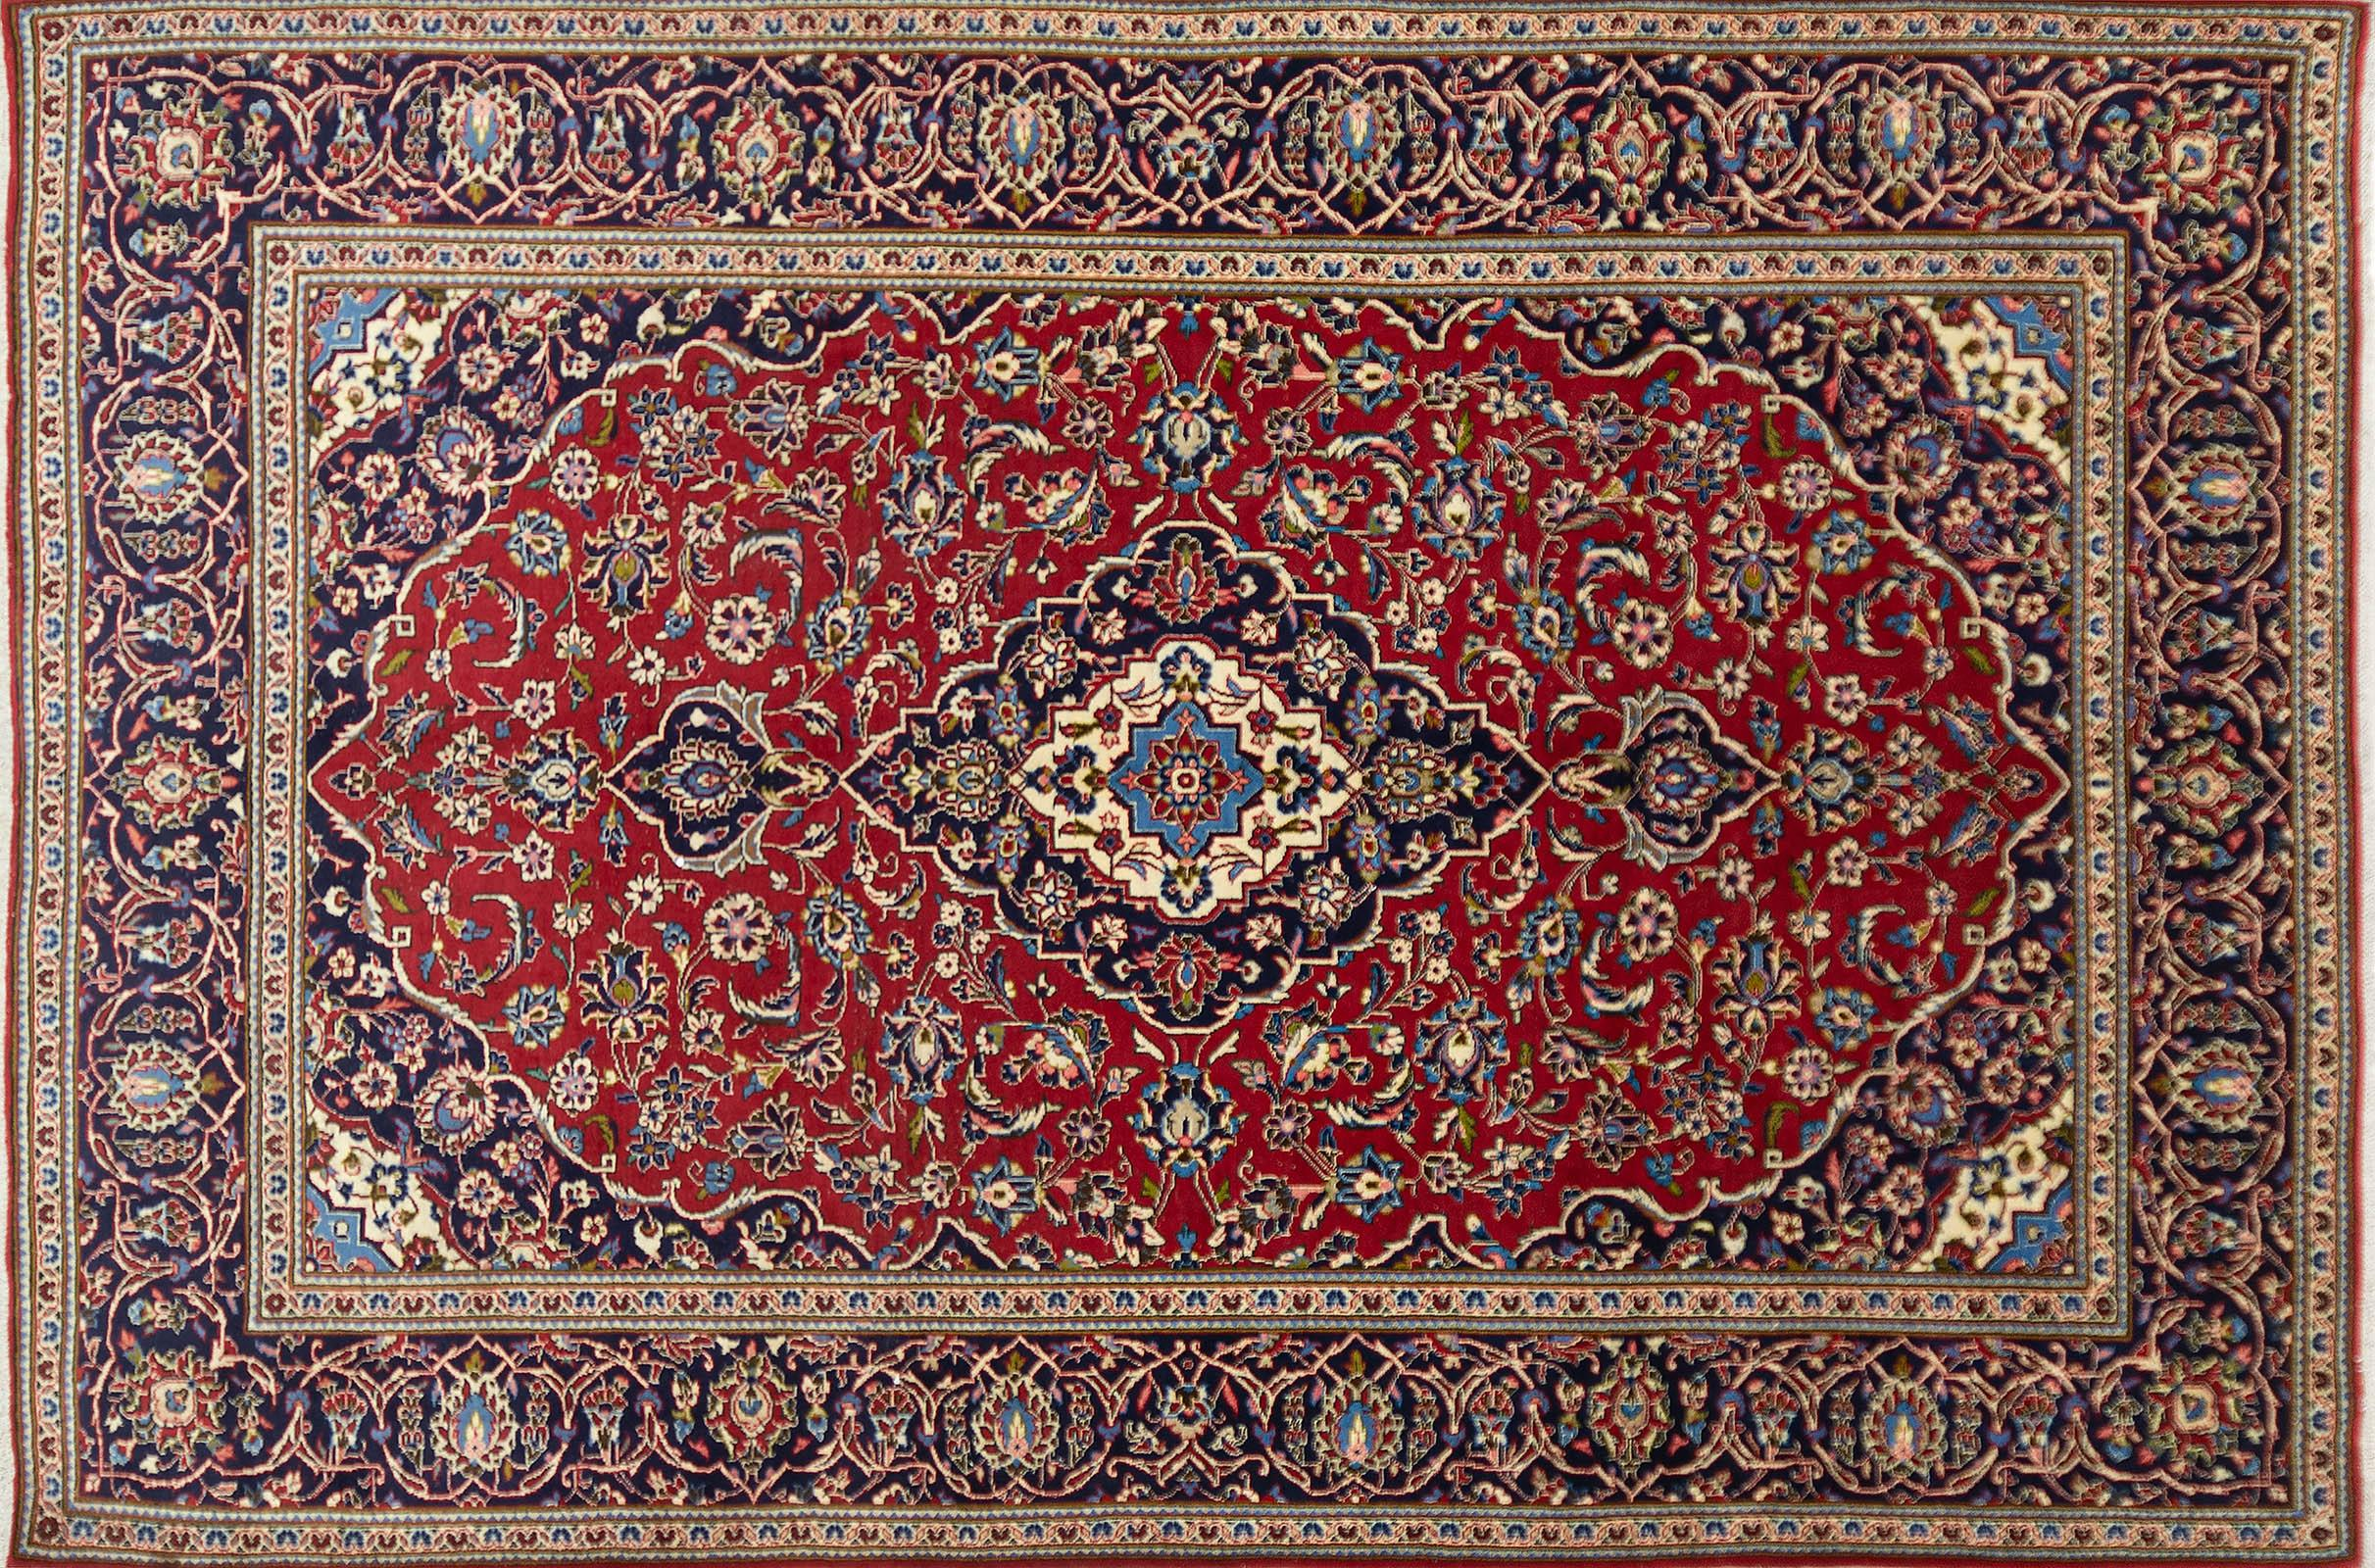 A Persian Hand Knotted Kashan Carpet, 358 x 239